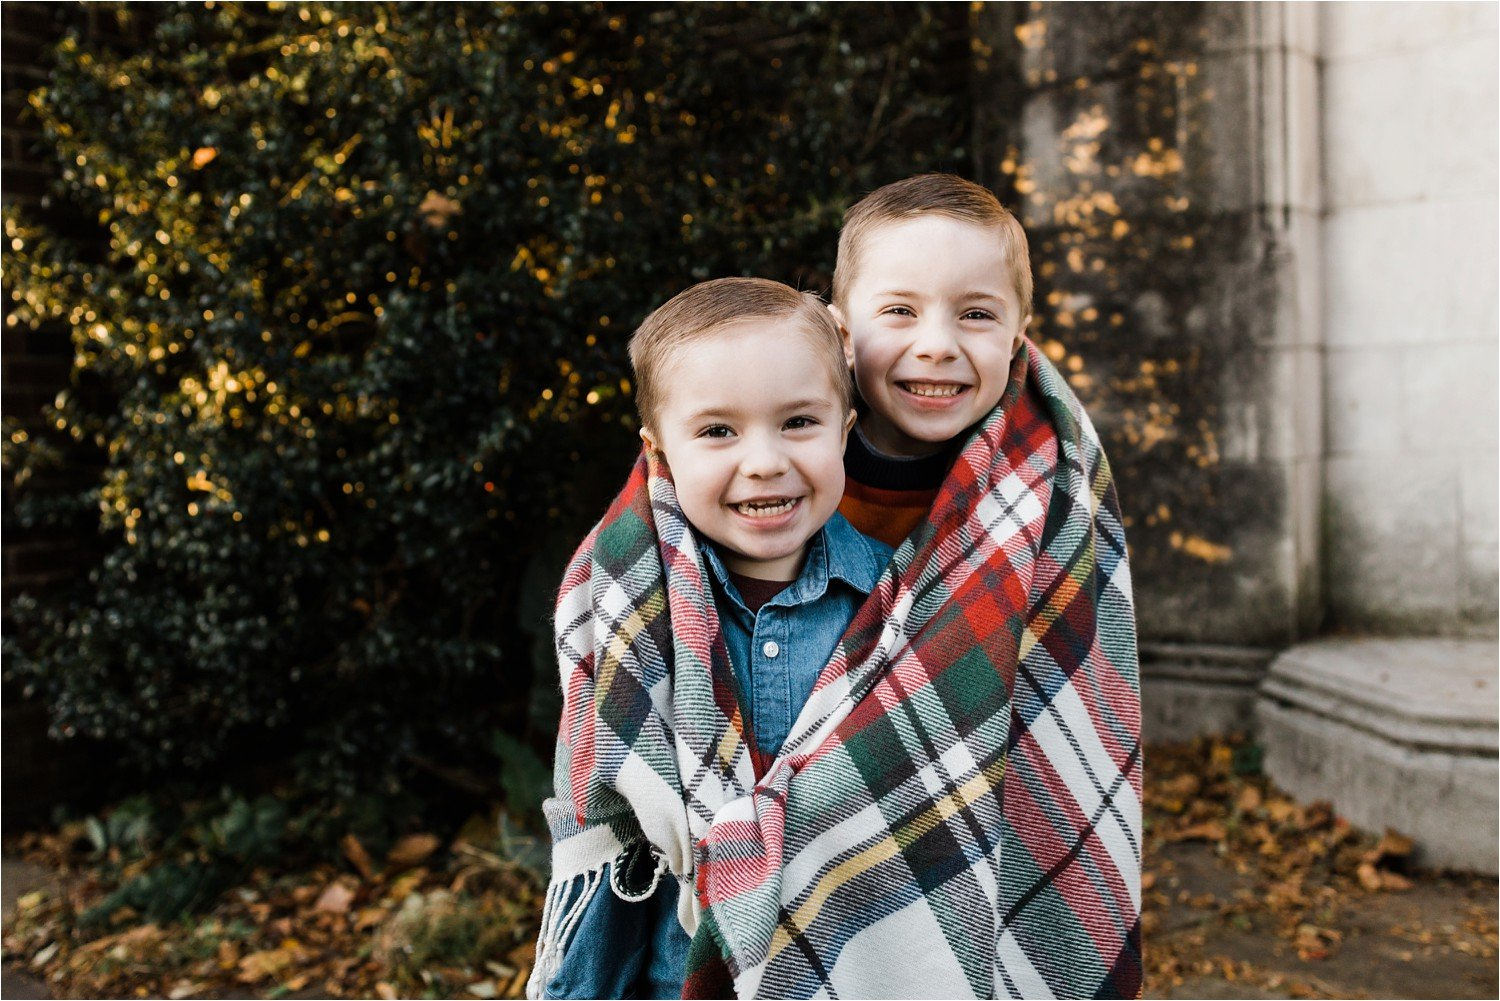 BROTHERS KEEPING WARM AT OUTDOOR FAMILY PHOTO SESSION